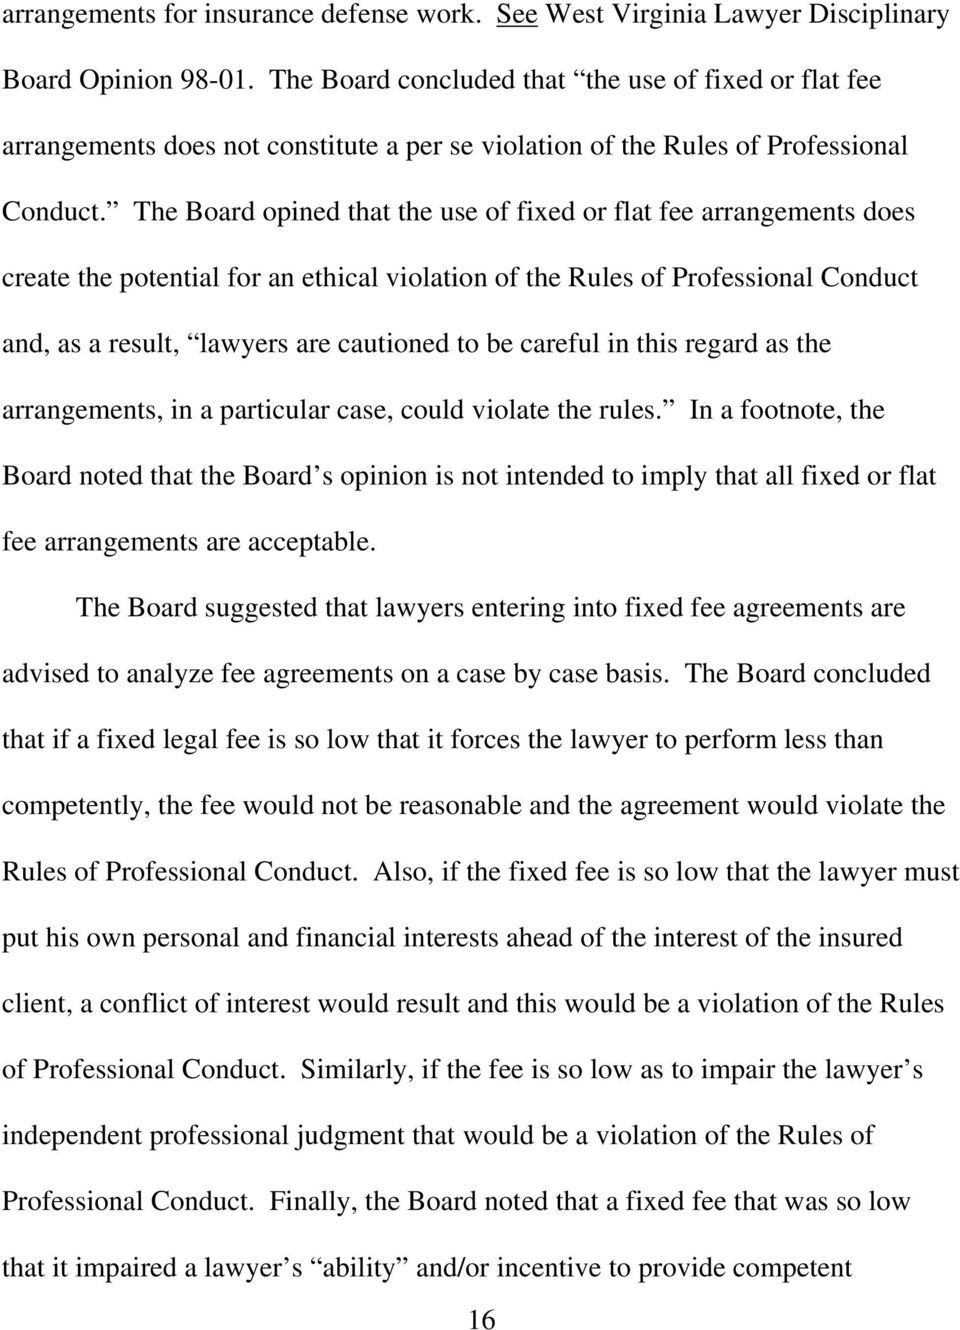 The Board opined that the use of fixed or flat fee arrangements does create the potential for an ethical violation of the Rules of Professional Conduct and, as a result, lawyers are cautioned to be